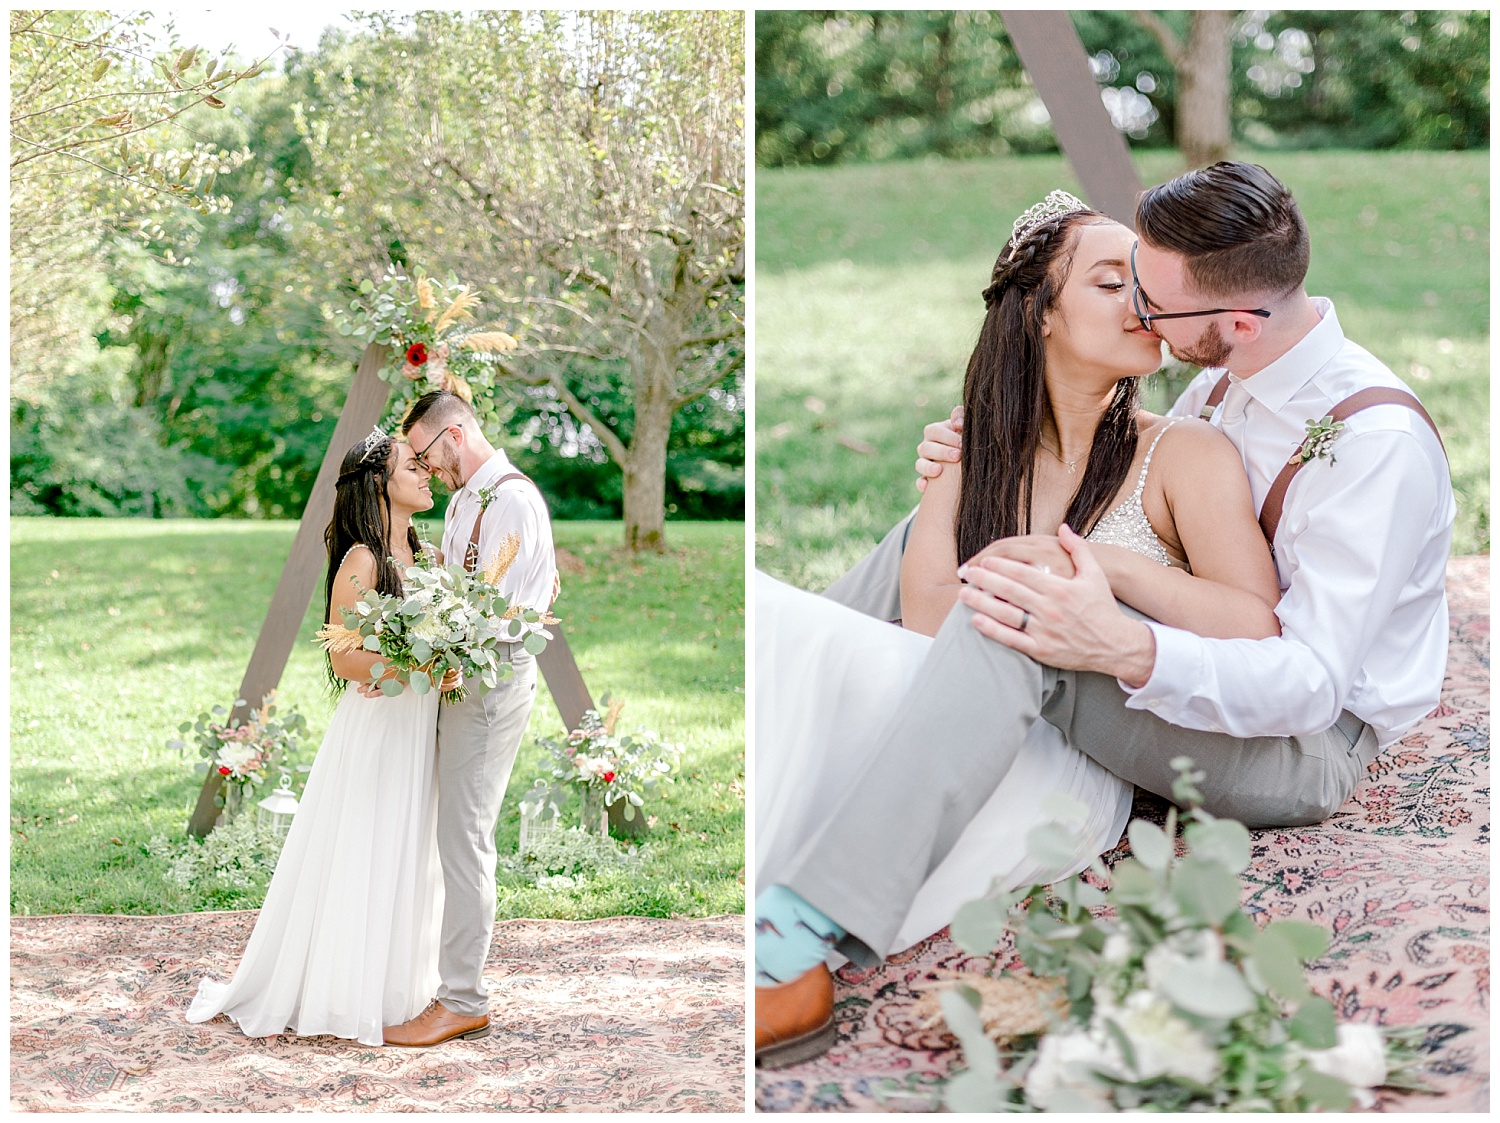 Olive green and white rustic barn wedding at burnside plantation in bethlehem pennsylvania by PA based destination wedding and lifestyle photographer Lytle photography (59).jpg